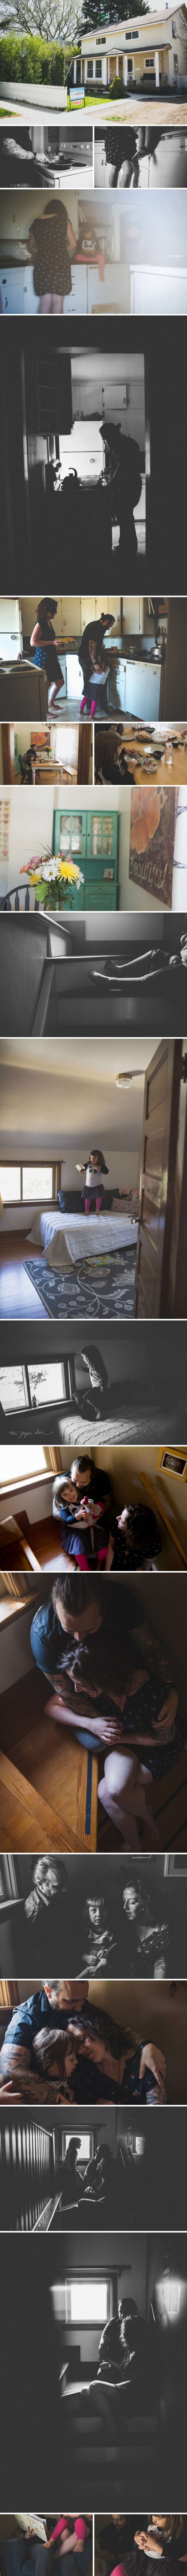 moving out session | ©The Paper Deer Photography | thepaperdeer.ca